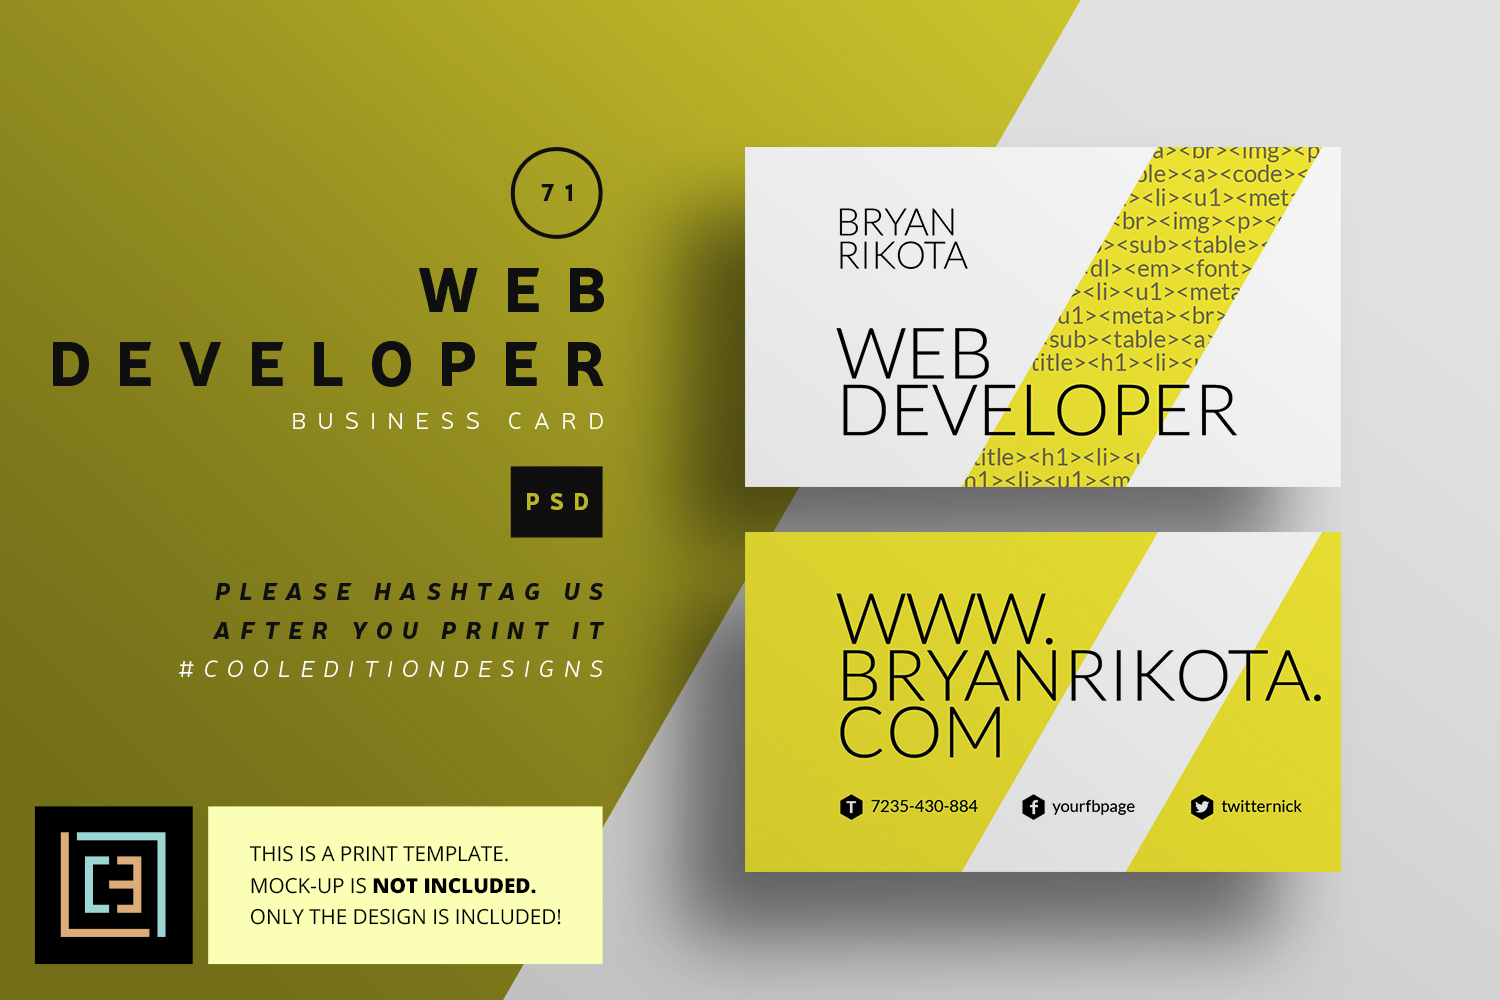 Web developer business card bc071 by design bundles web developer business card bc071 example image 1 reheart Image collections